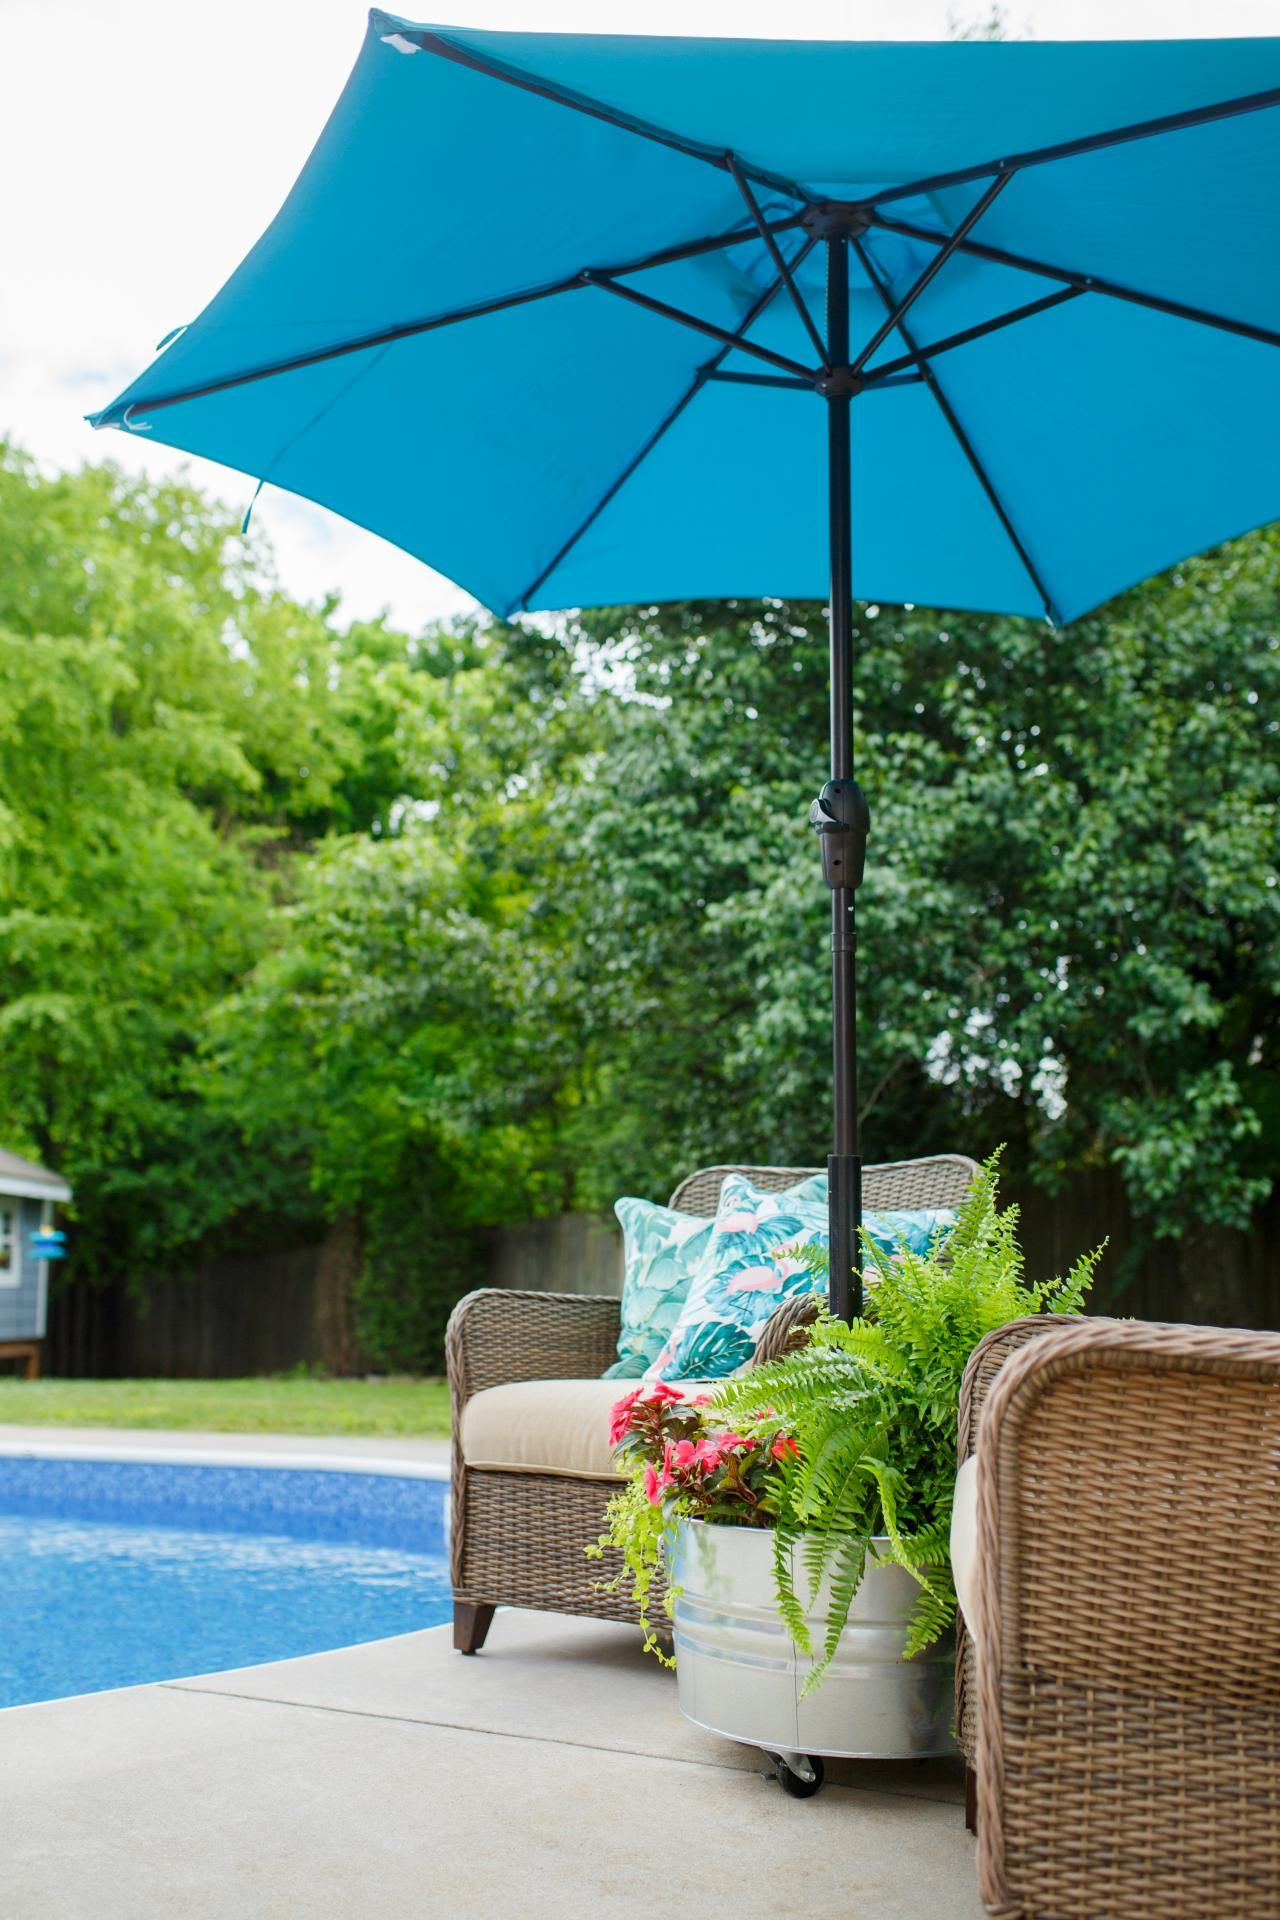 Download Wallpaper Patio Table Umbrella With Base